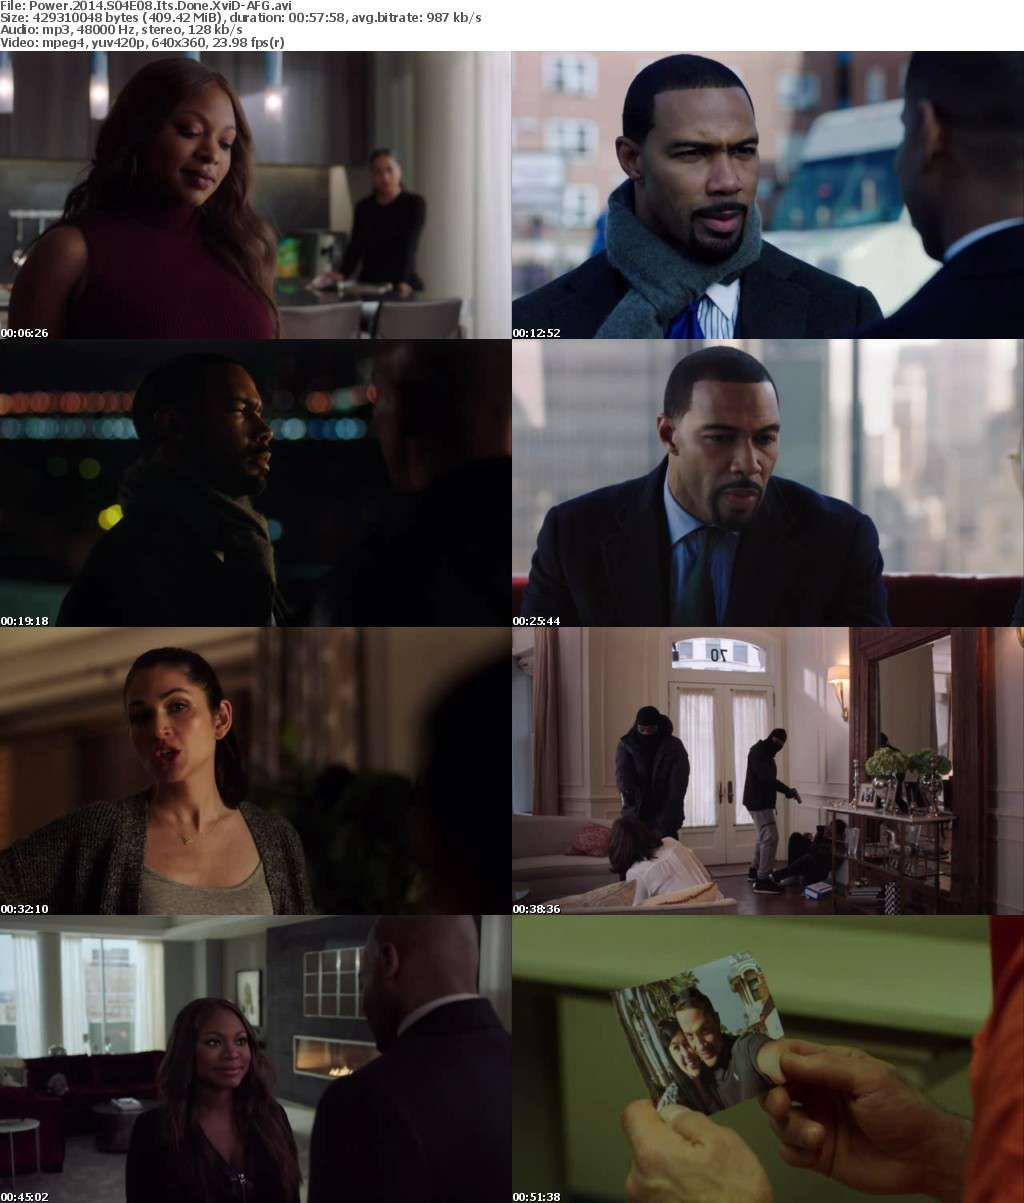 Power 2014 S04E08 Its Done XviD-AFG